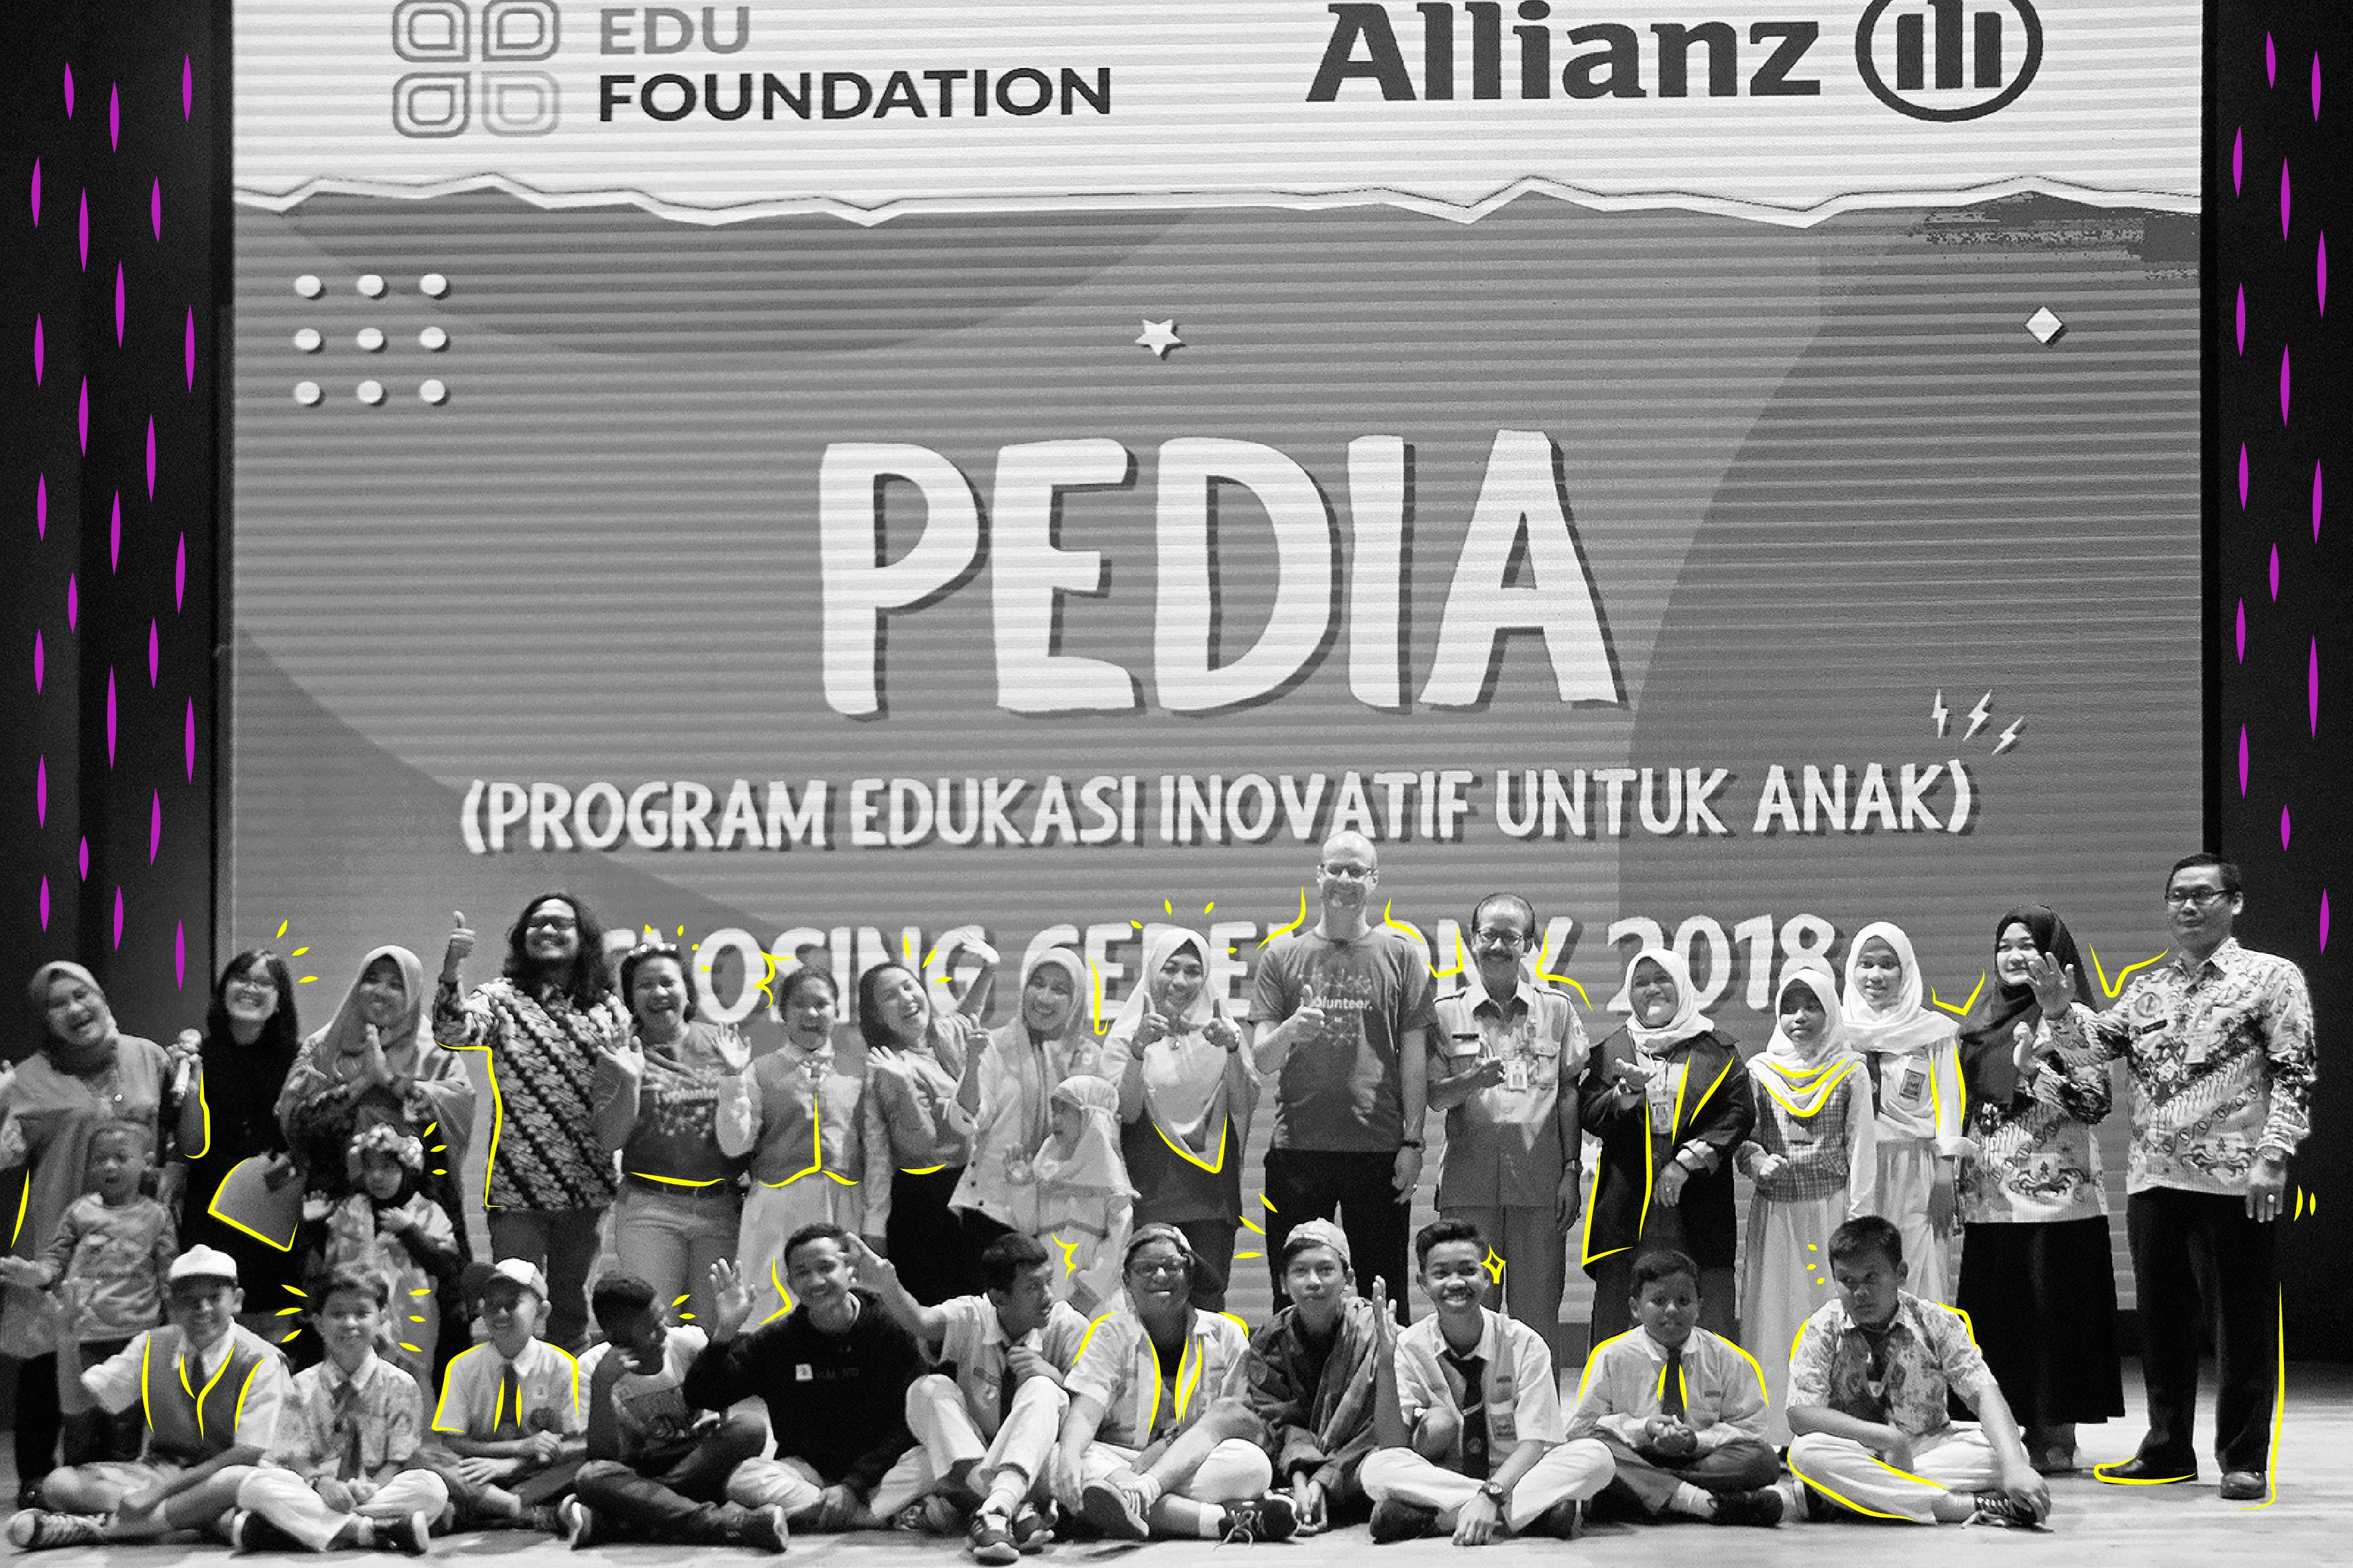 01-imi-edu-foundation